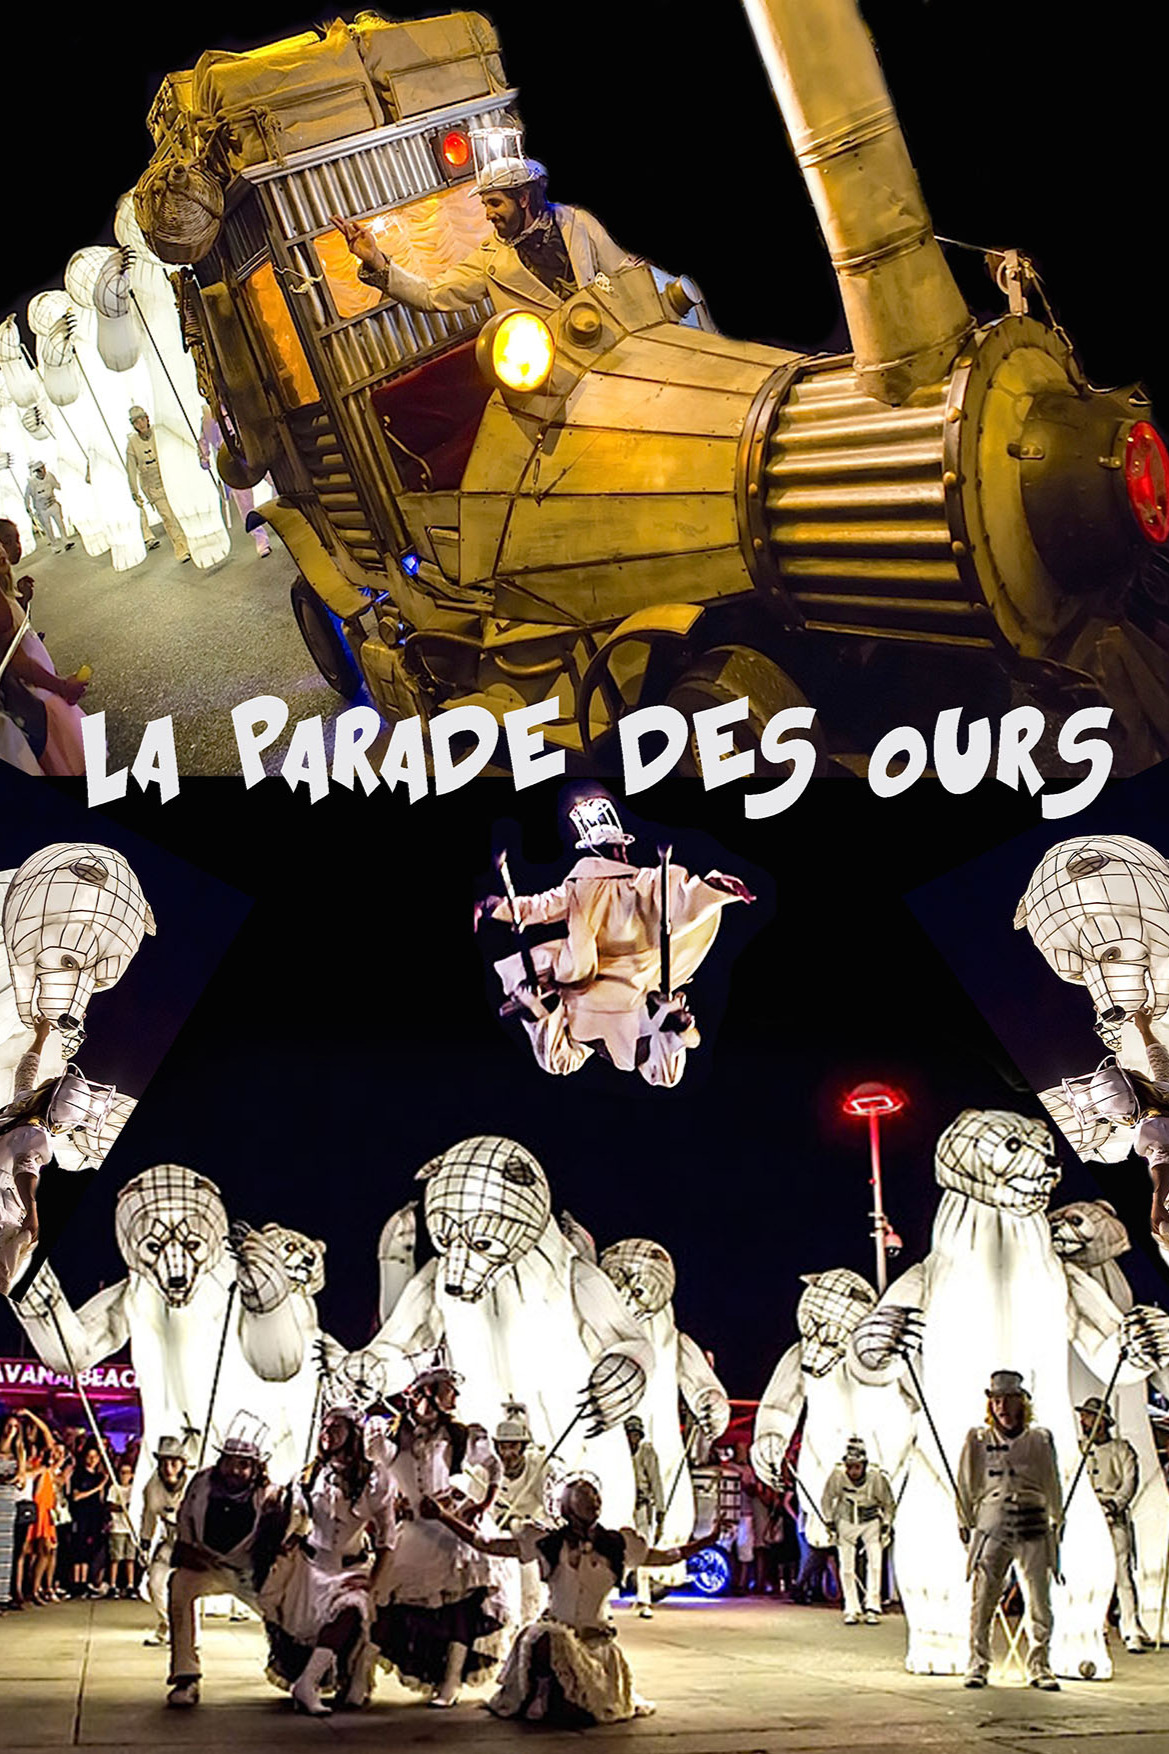 PARADE%20DES%20OURS%20BD_edited